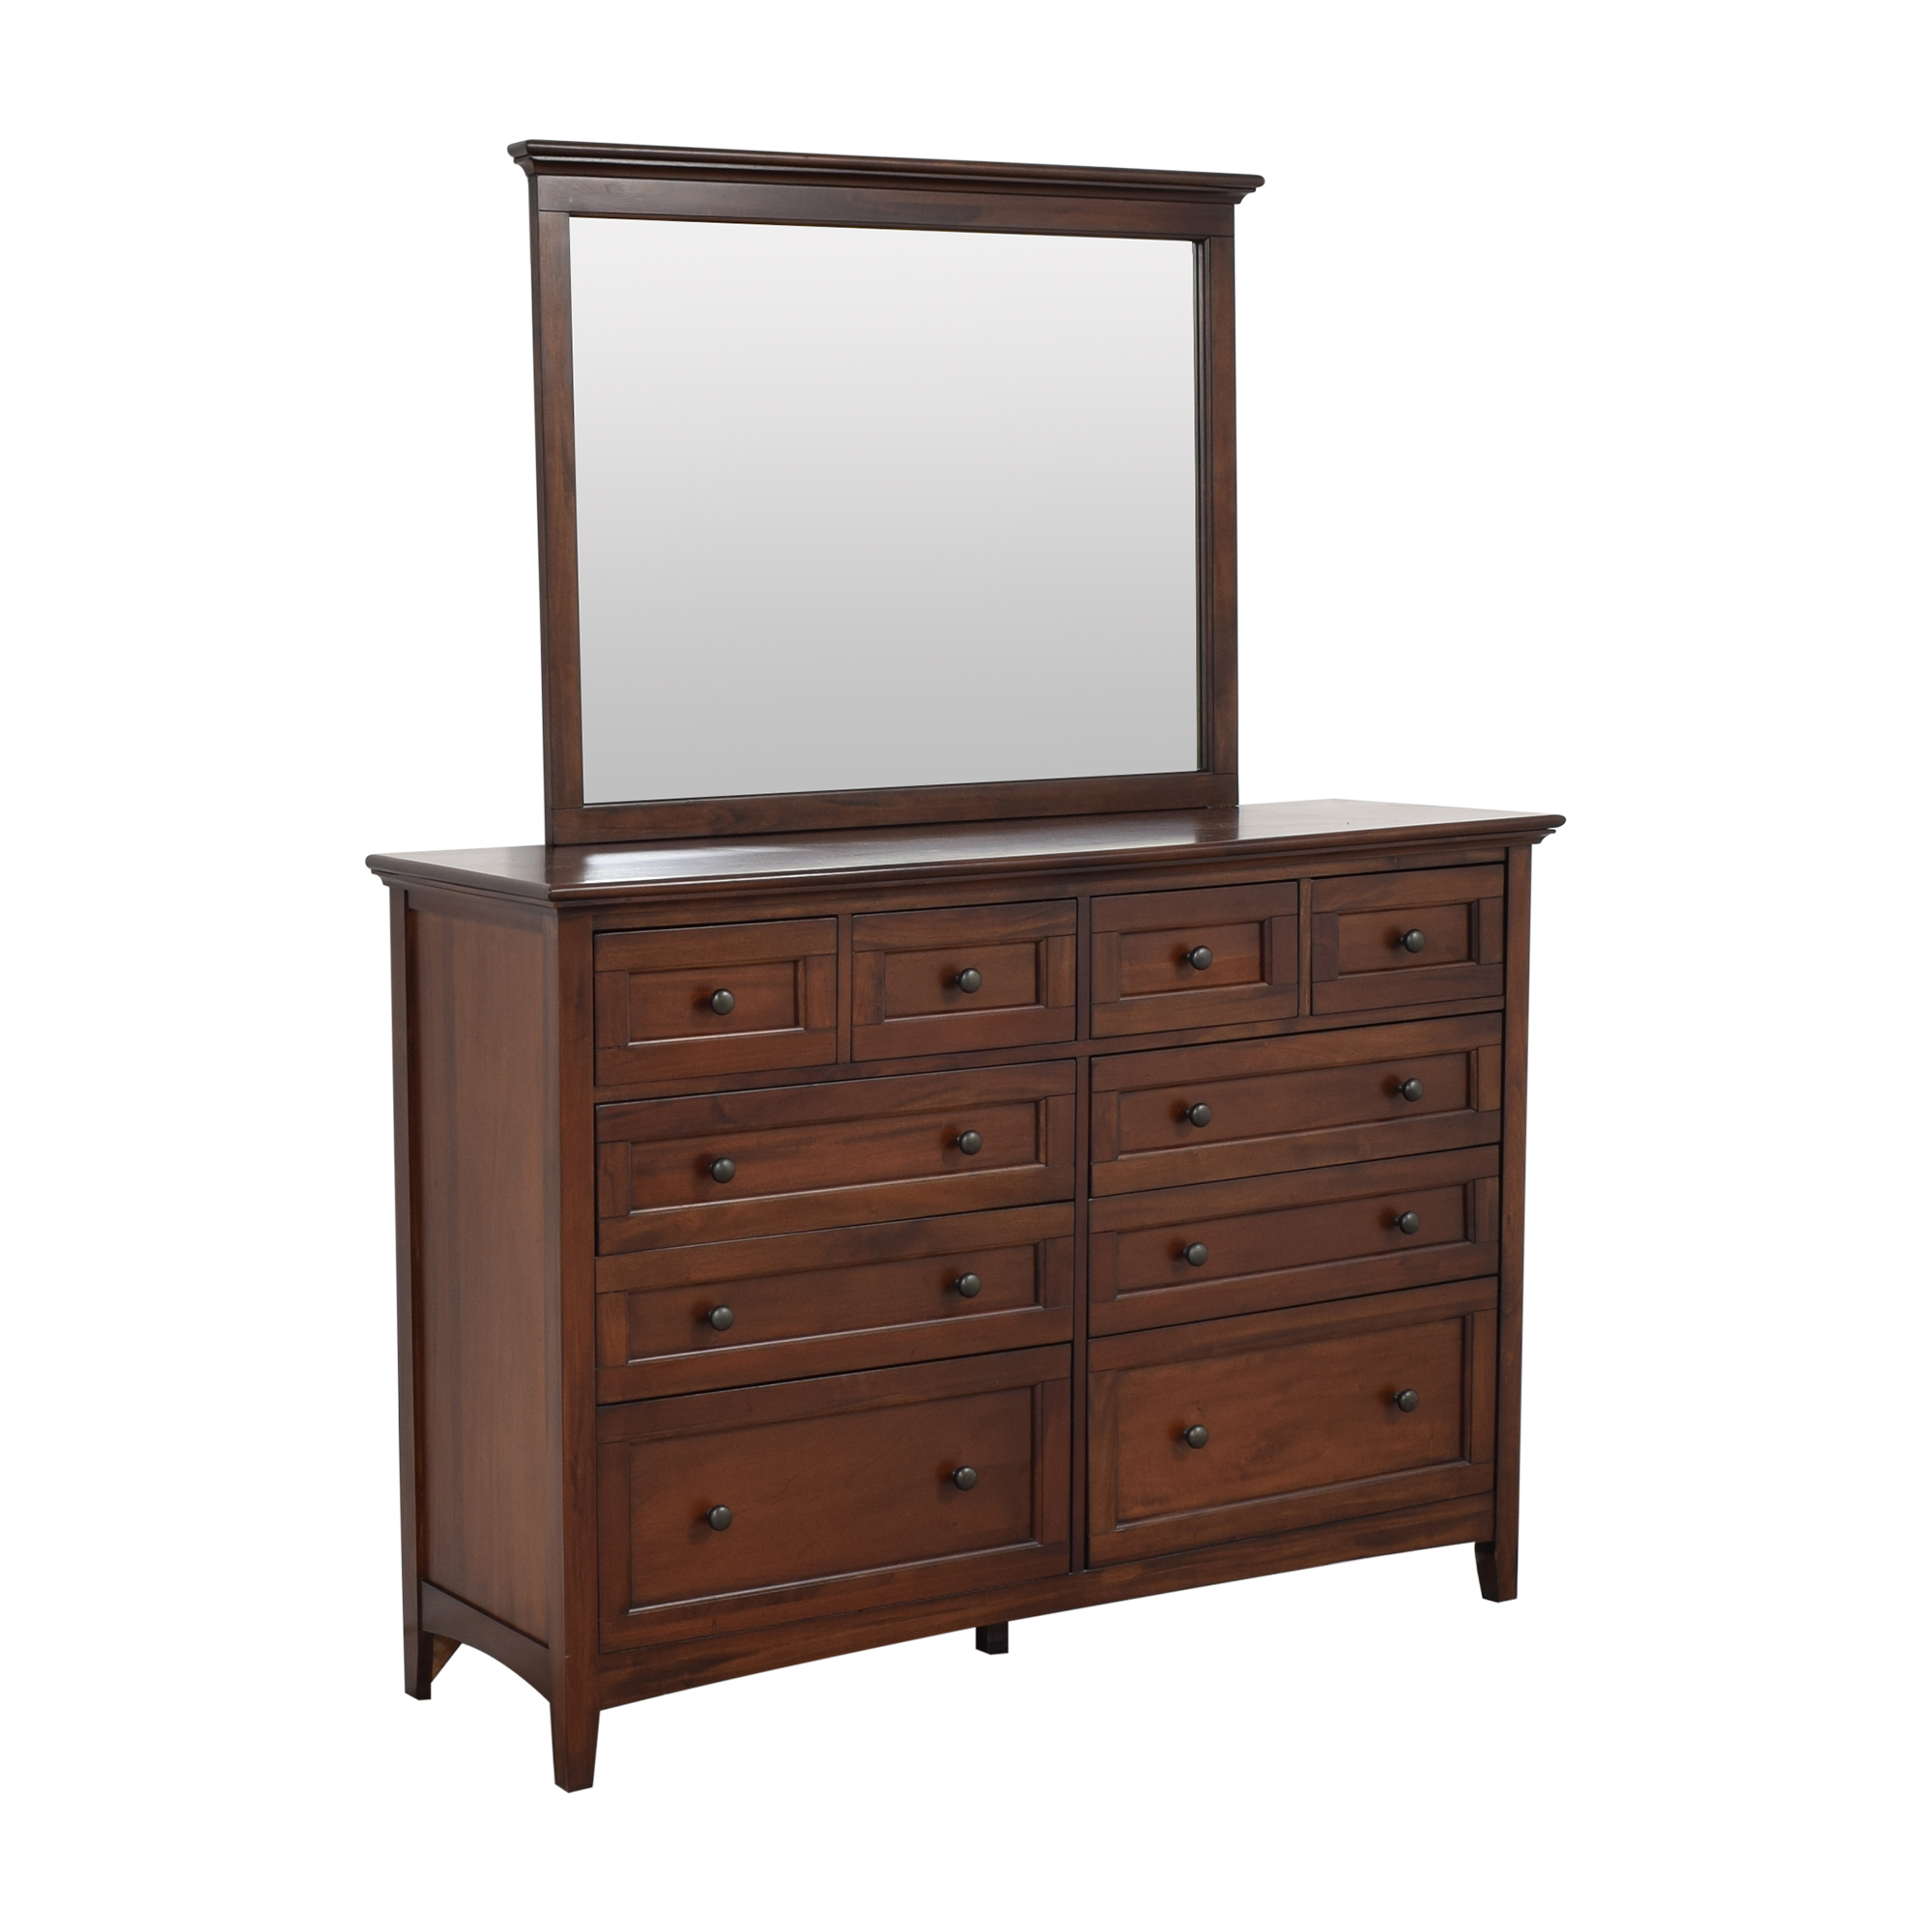 shop A-America Westlake Bedroom Dresser with Mirror A-America Wood Furniture Dressers